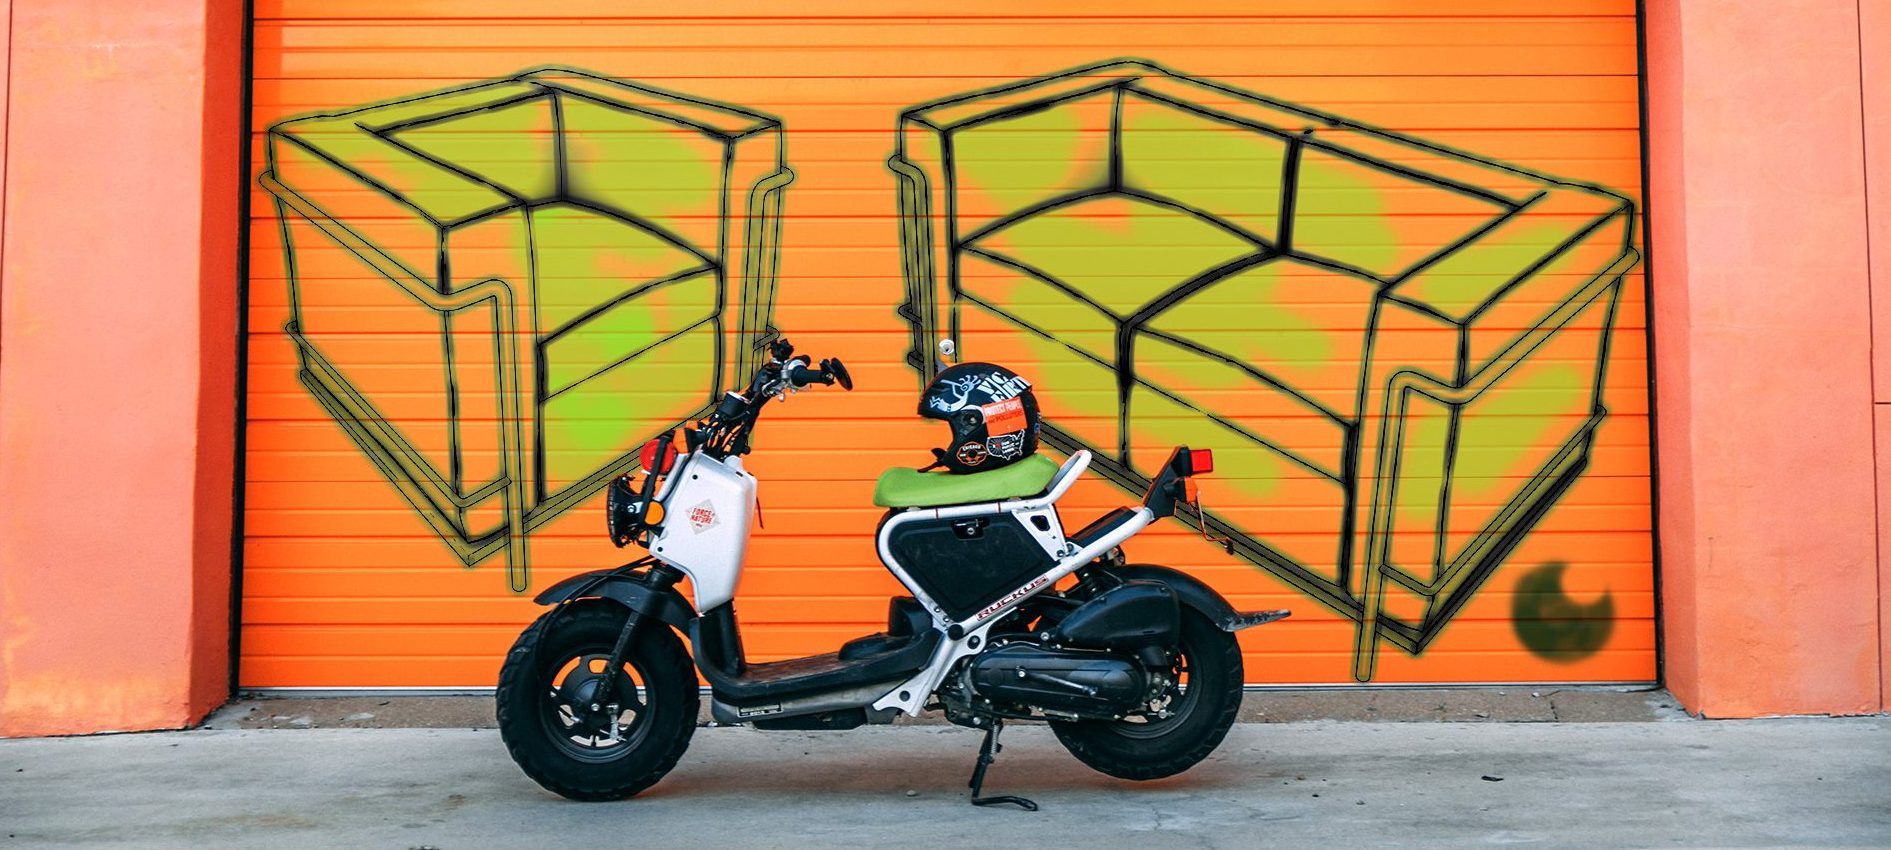 Image of motorcycle and helmet in front of graffiti of couches